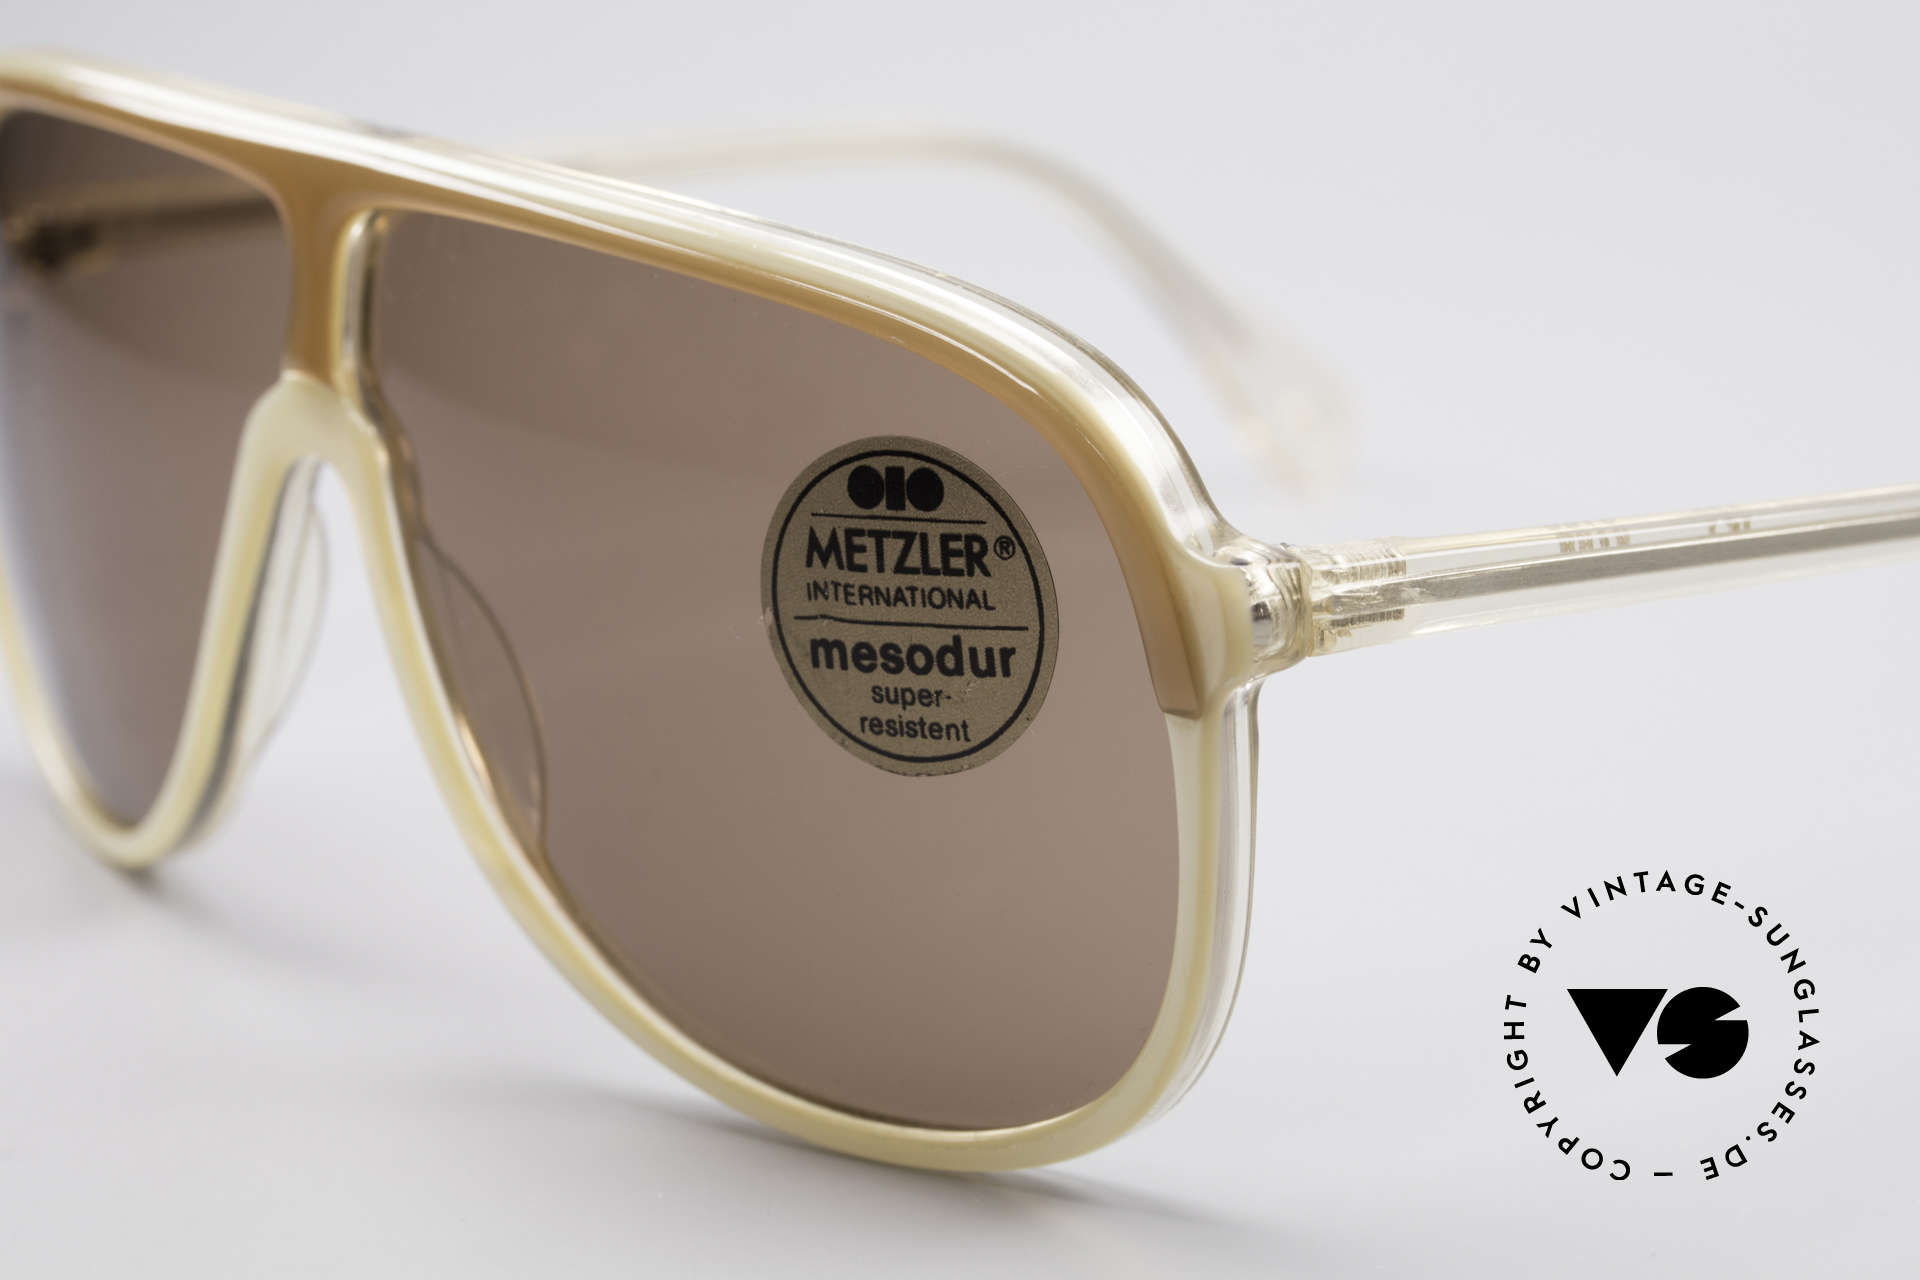 Metzler 0100 Rare Vintage Sunglasses, new old stock (like all our vintage Metzler sunglasses), Made for Men